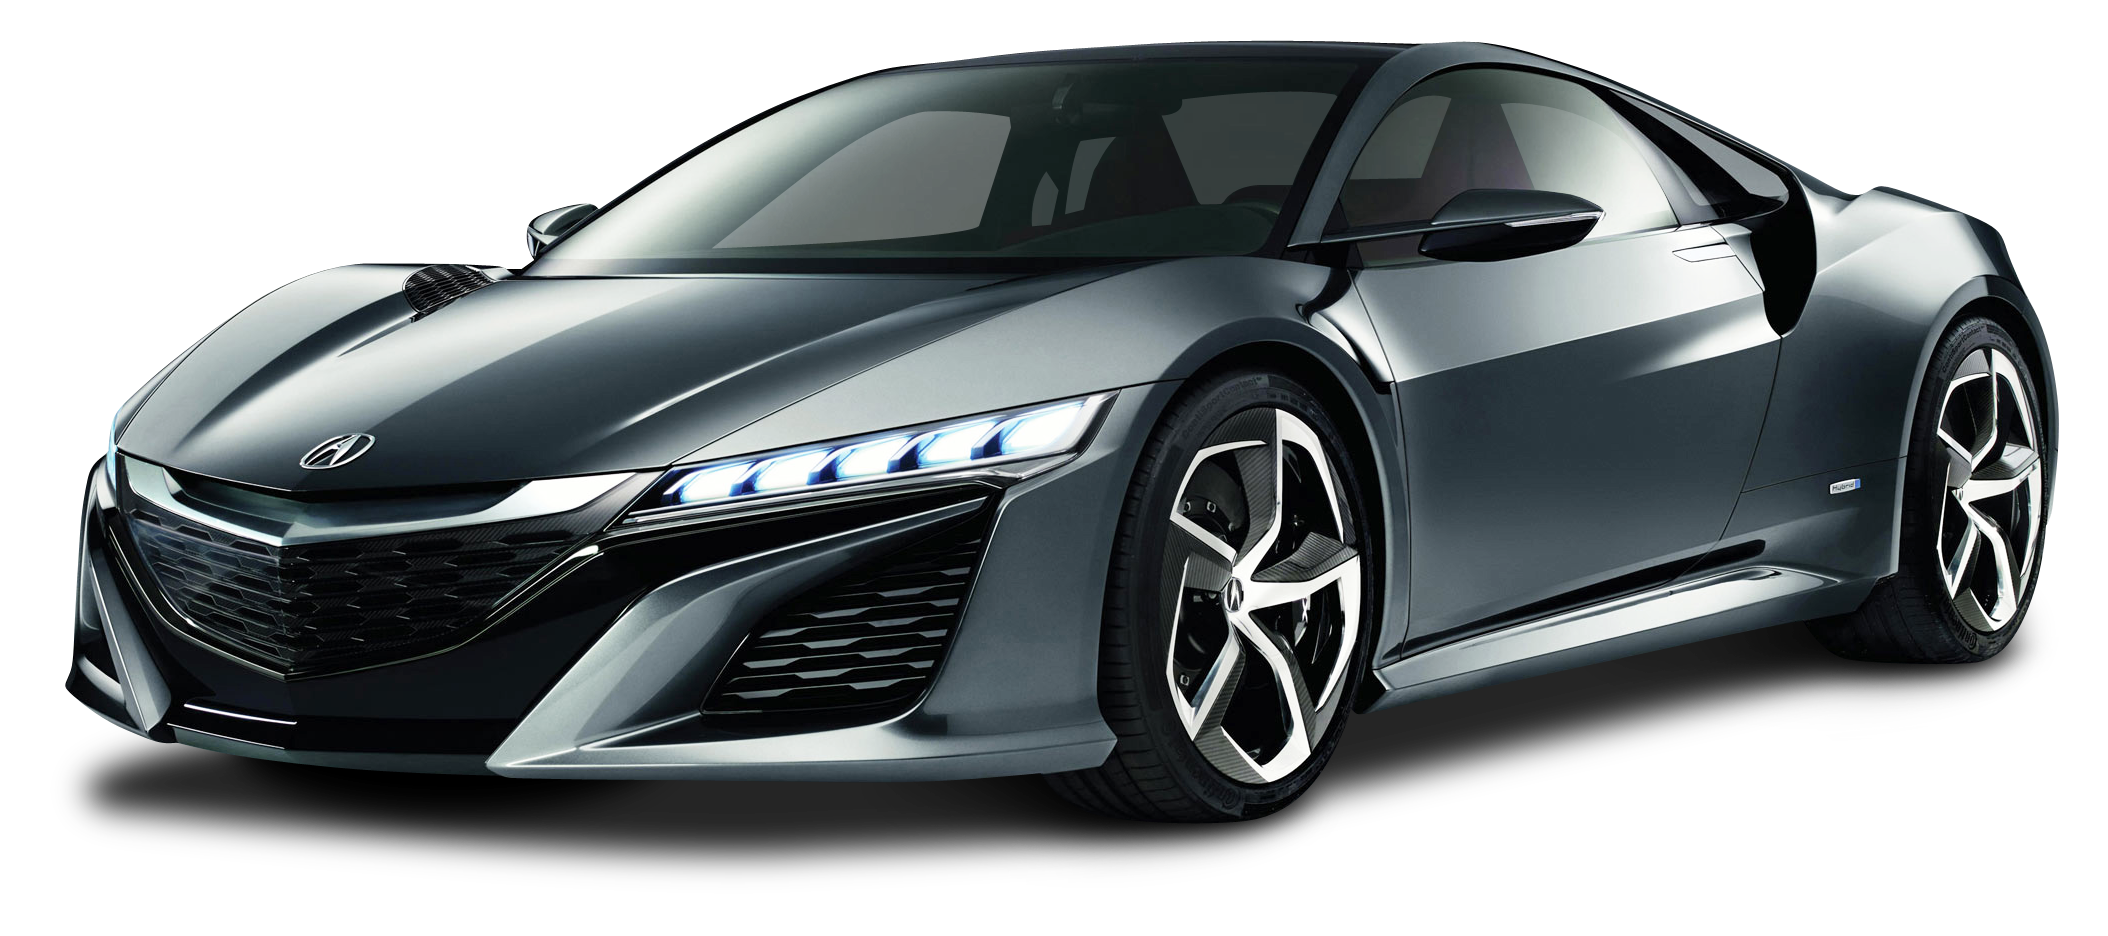 Acura NSX Car PNG Image - Acura PNG